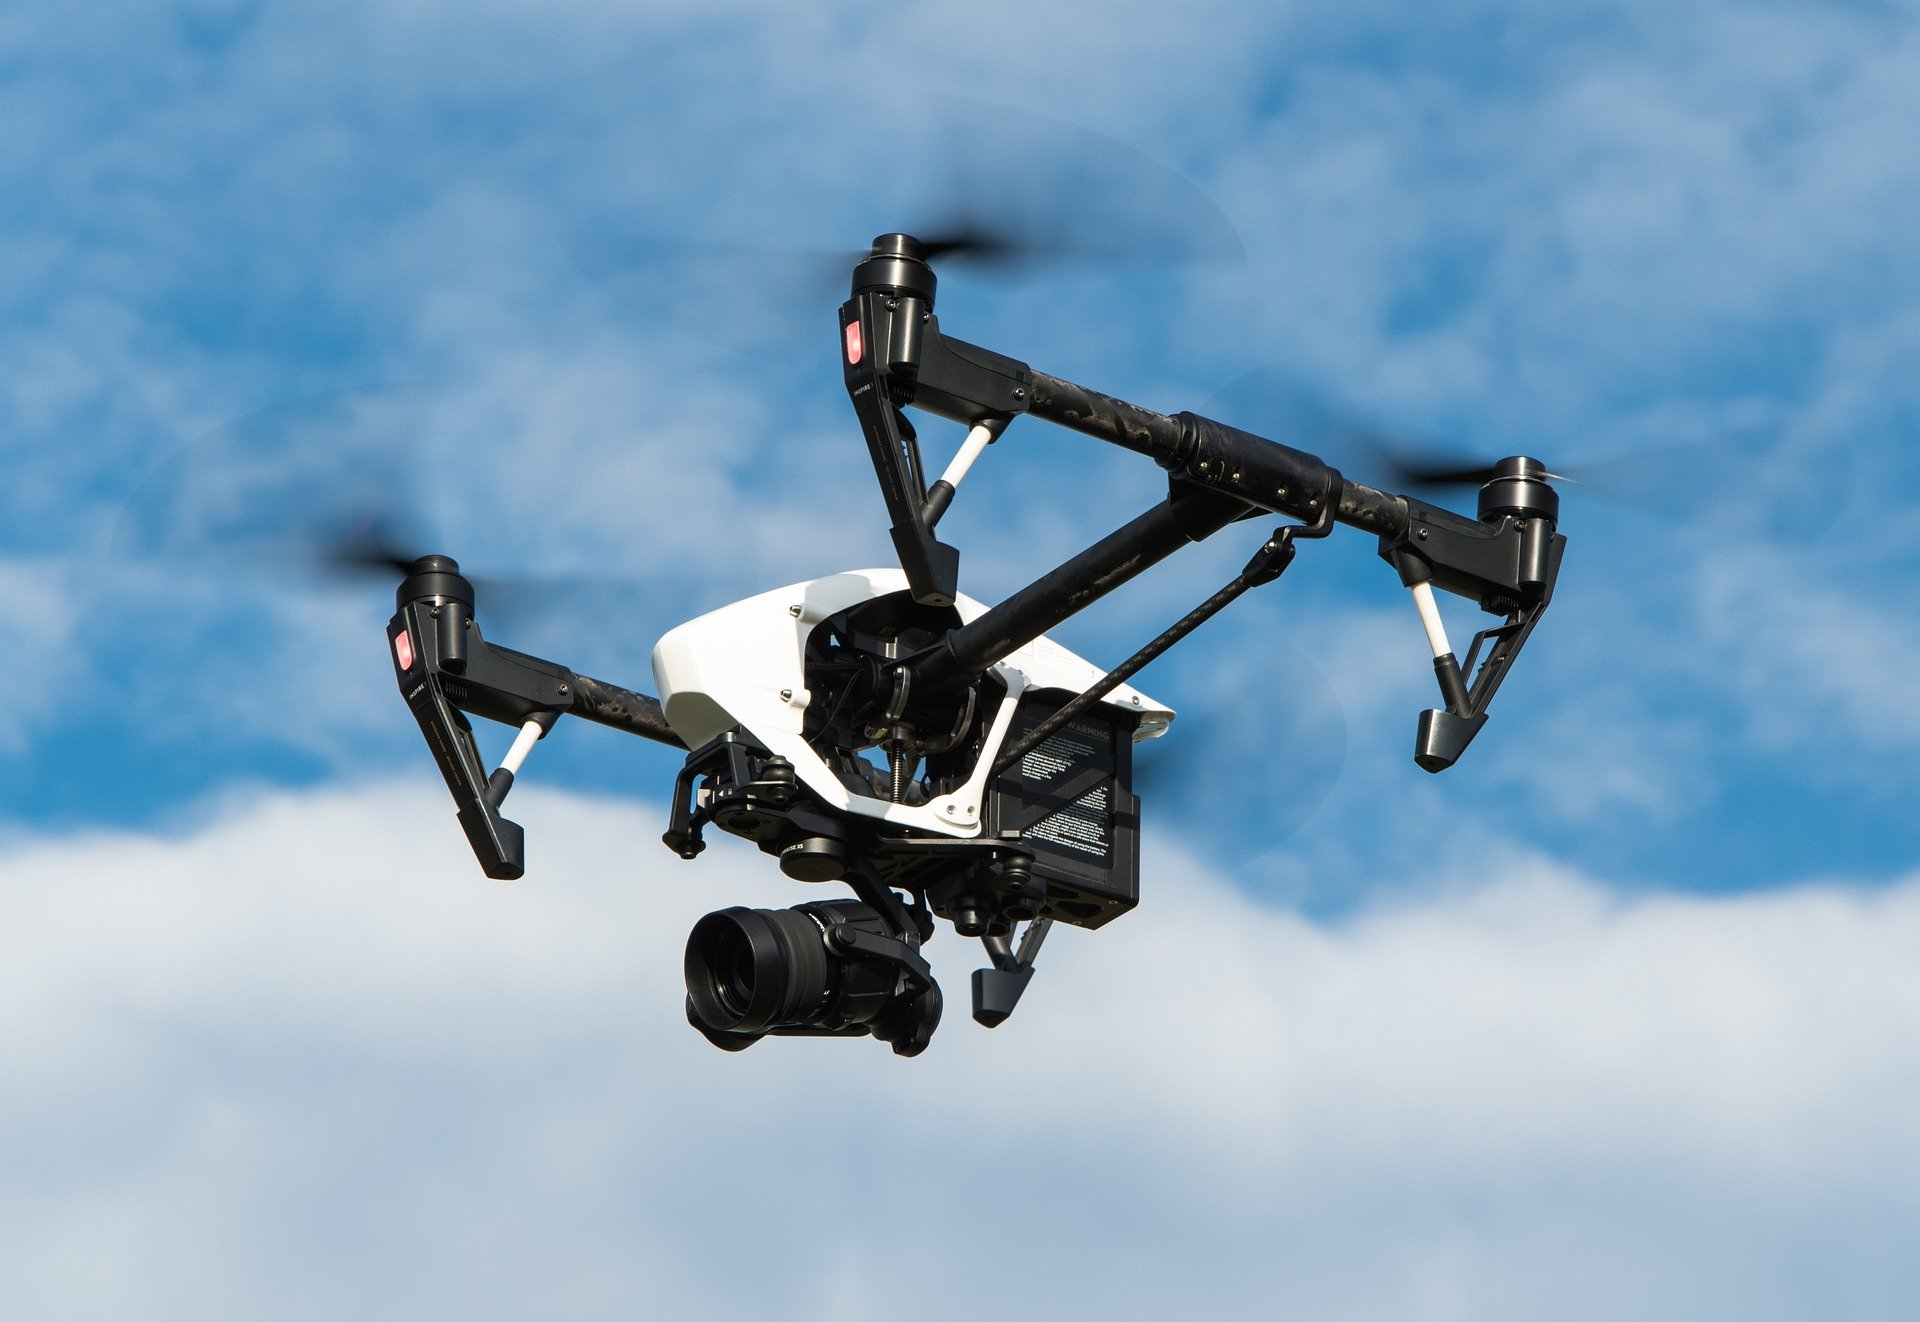 Plane passengers put at 'risk of serious injury' in near miss with drone